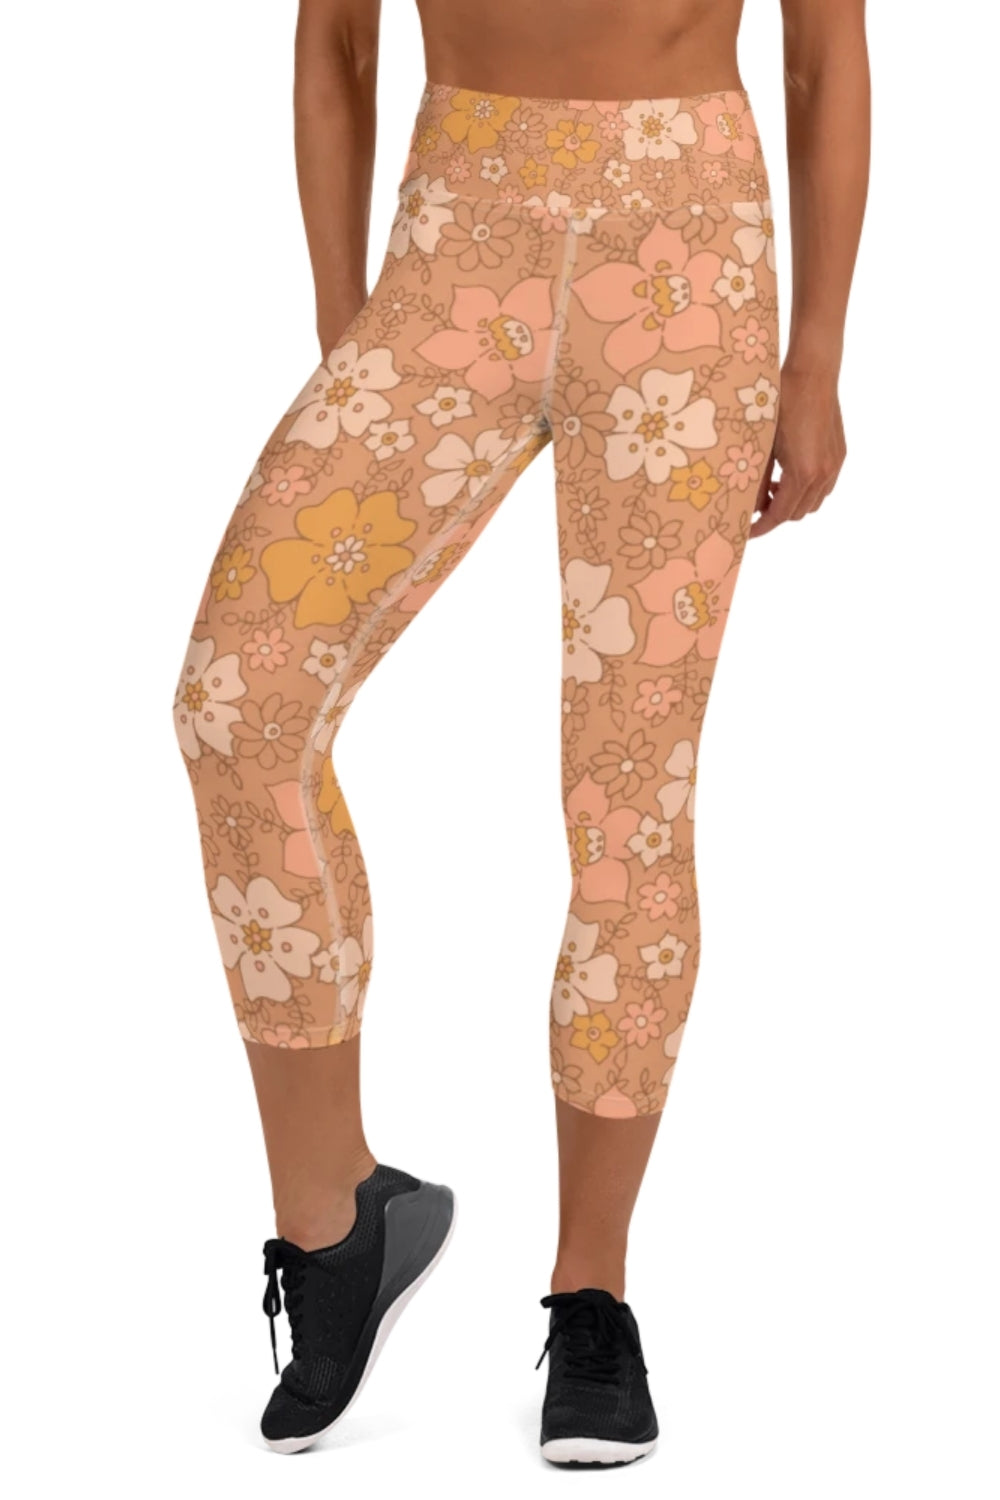 Peachy Keen 3/4 Yoga Leggings